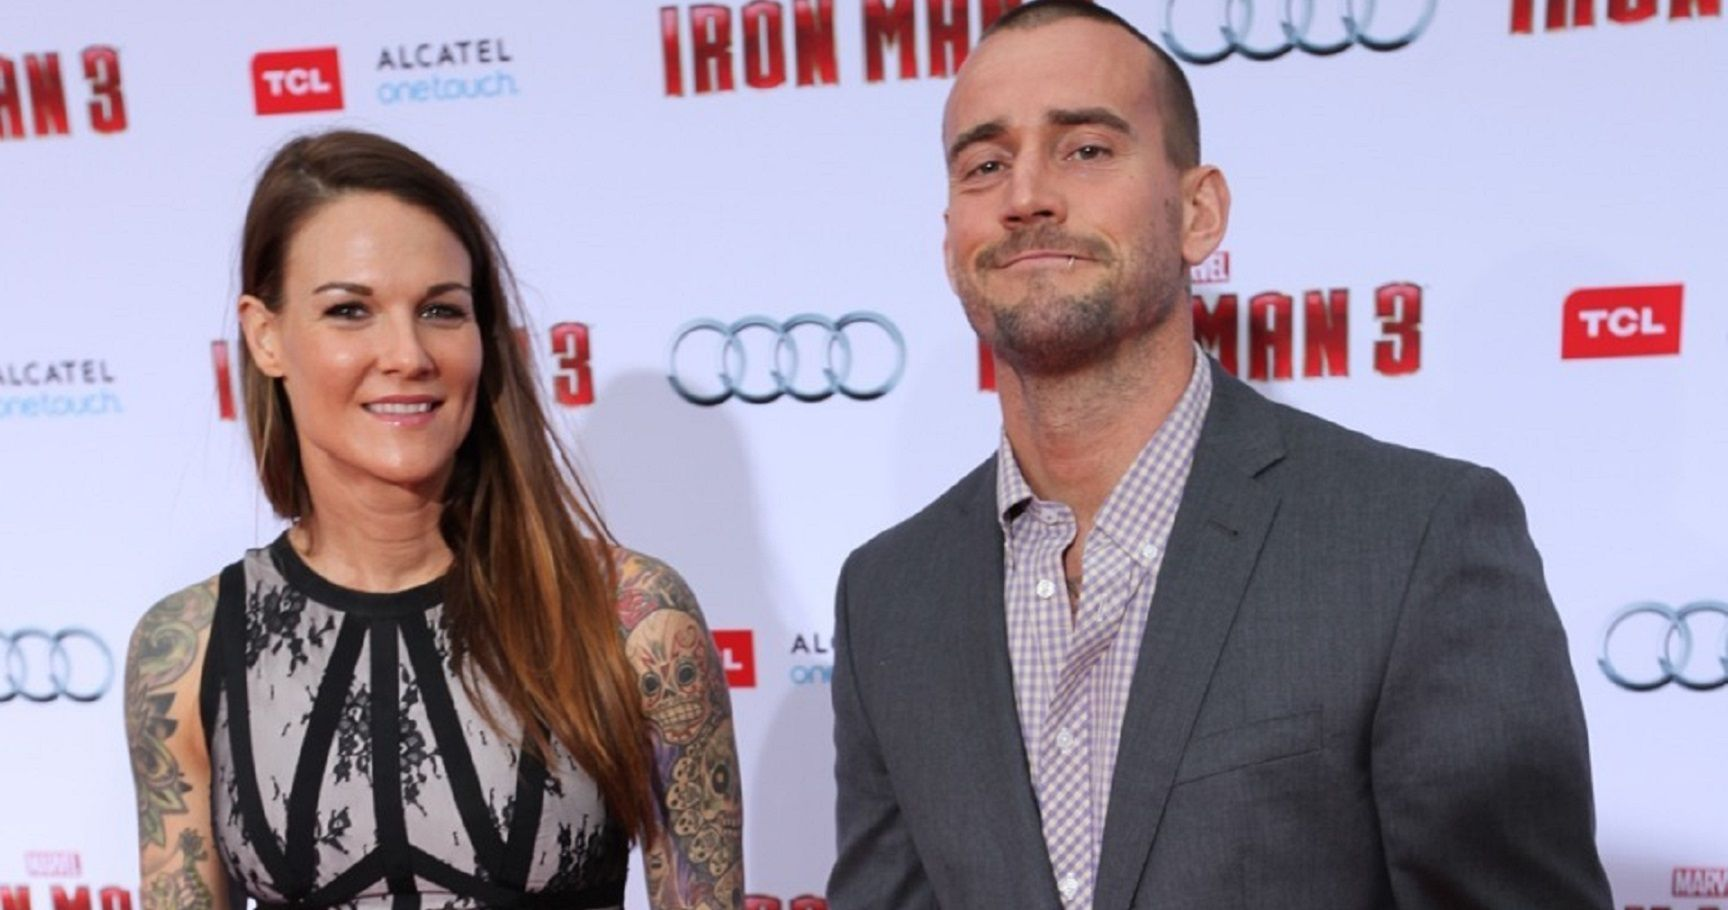 Amy dumas and cm punk dating 2012